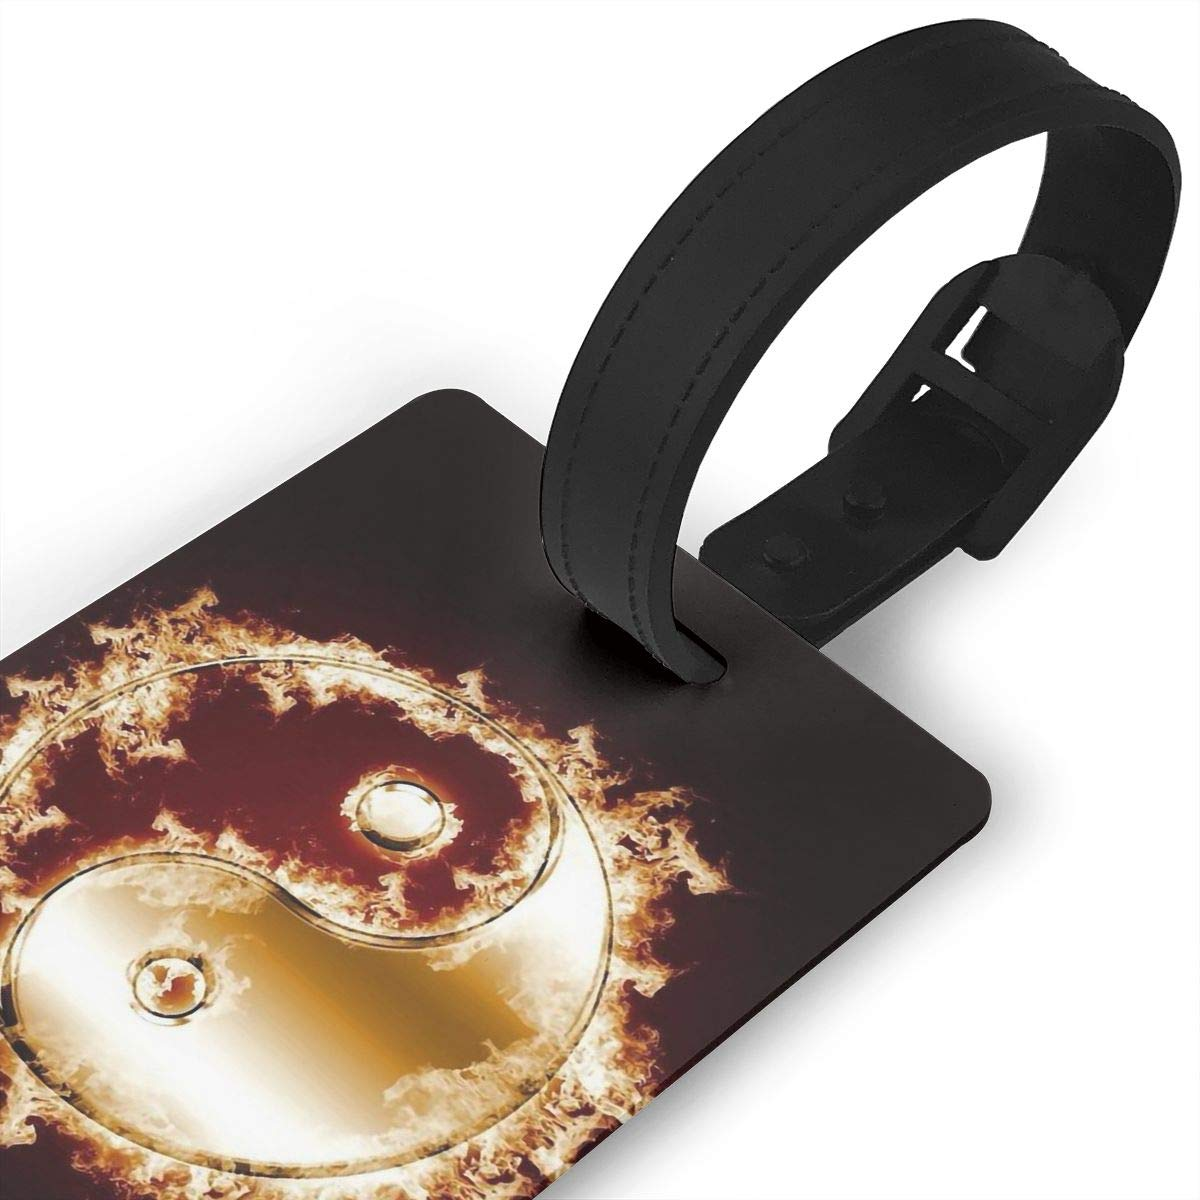 Yin Yang Handbag Tag For Suitcase Bag Accessories 2 Pack Luggage Tags